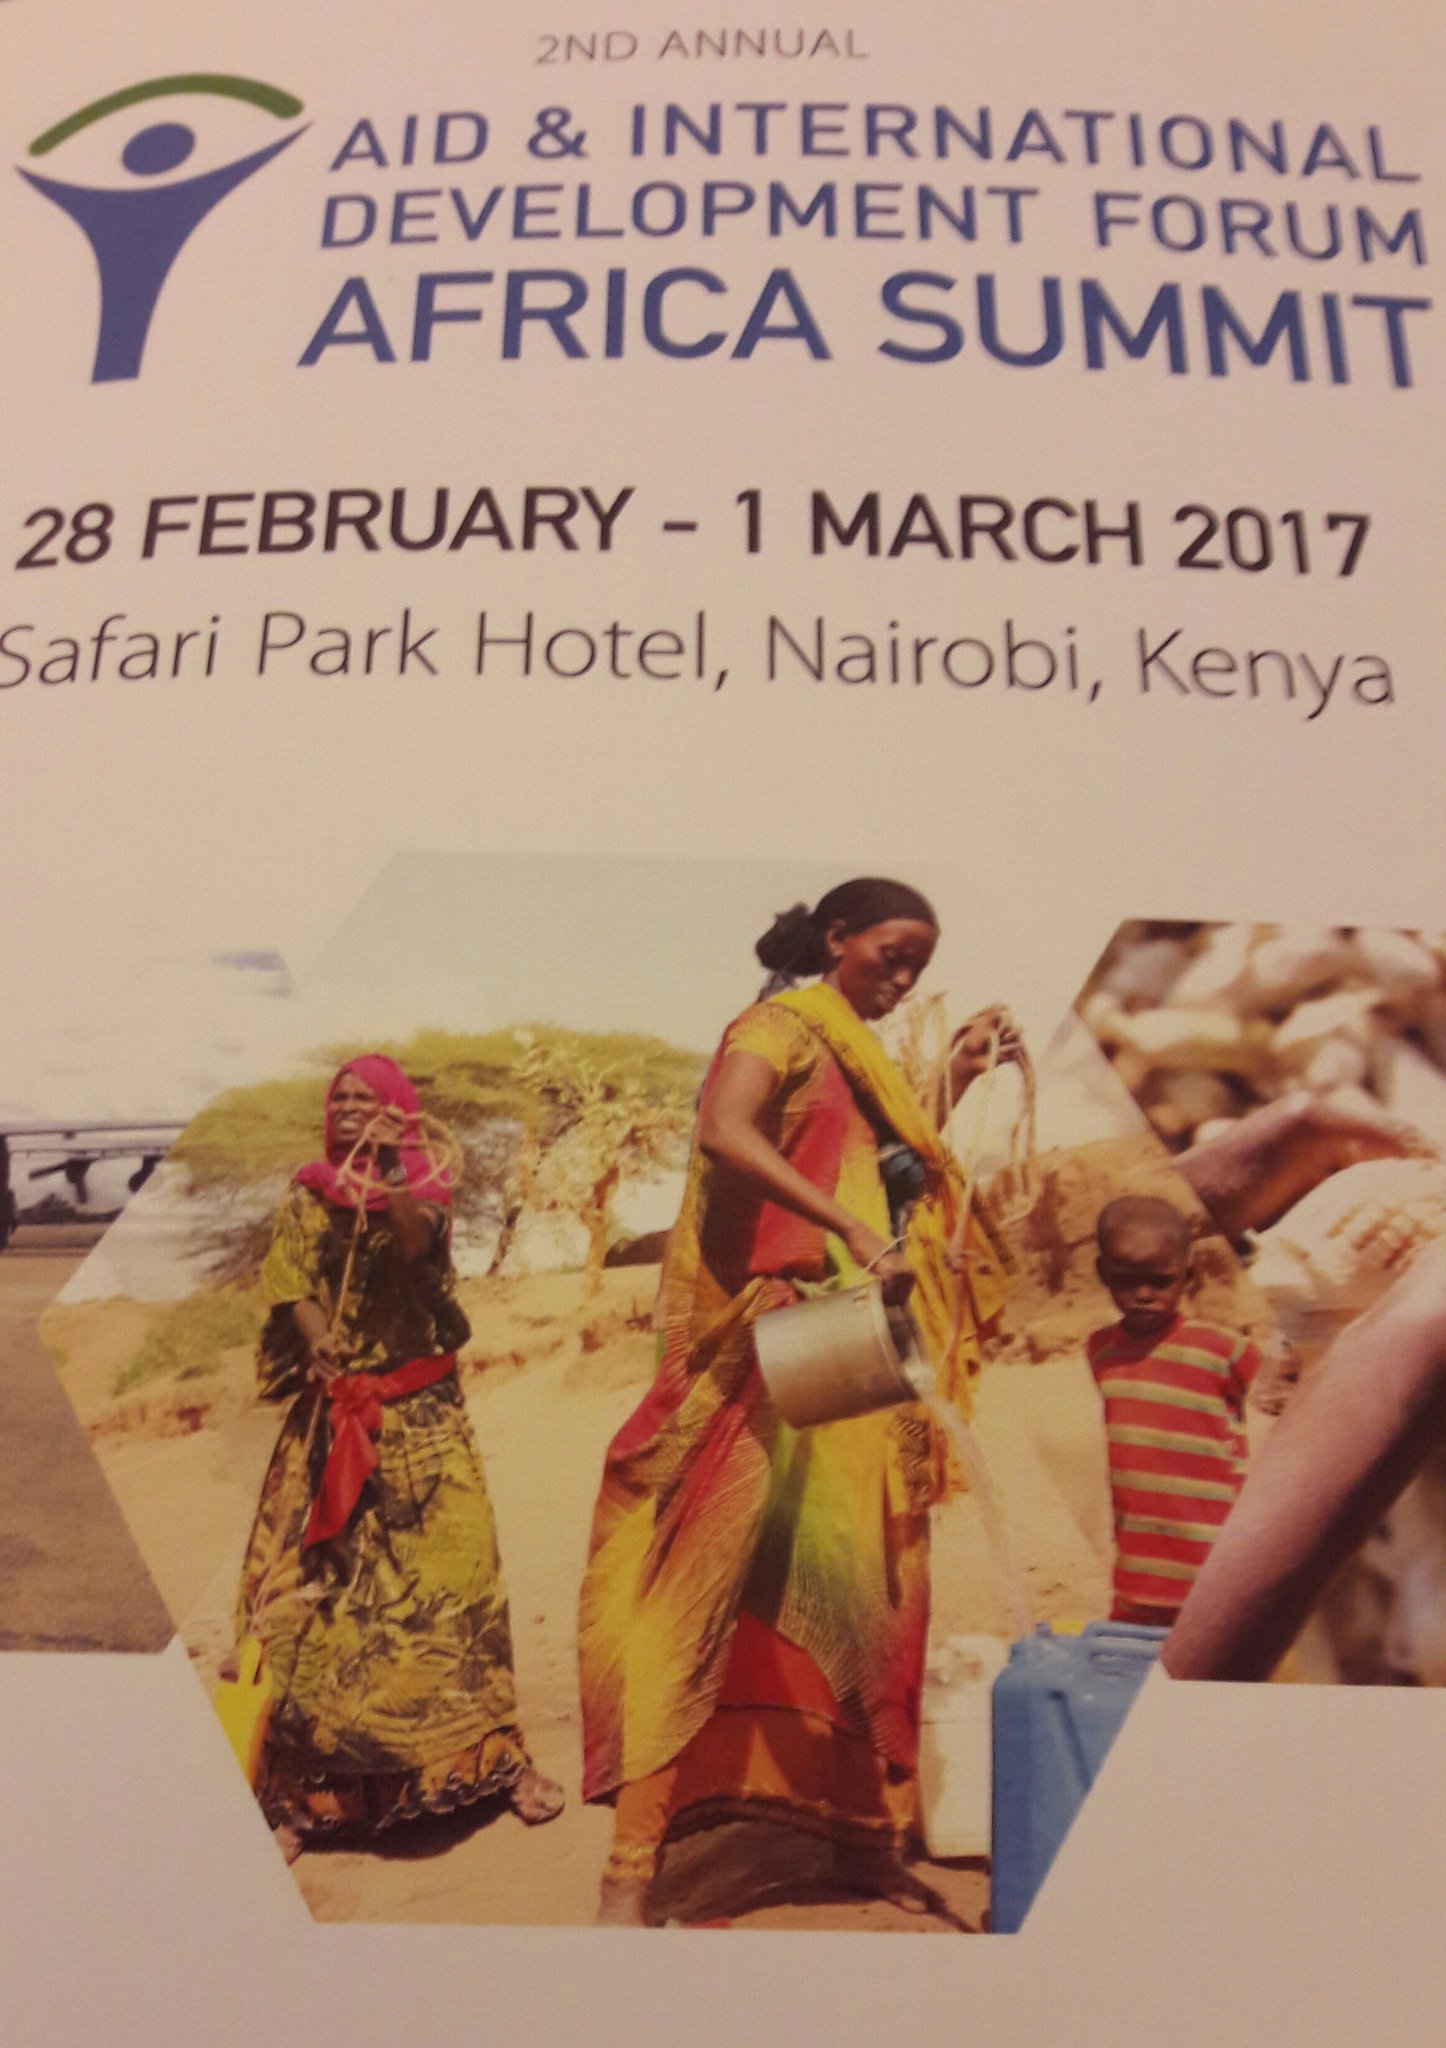 """#AIDFAfrica """"> fragility in contexts"""" require integrtdapproach& cost-efficiency -reduce #humanitarian &dev divide- https://t.co/Zv7wfTlacU https://t.co/Hm0Fx3eycj"""